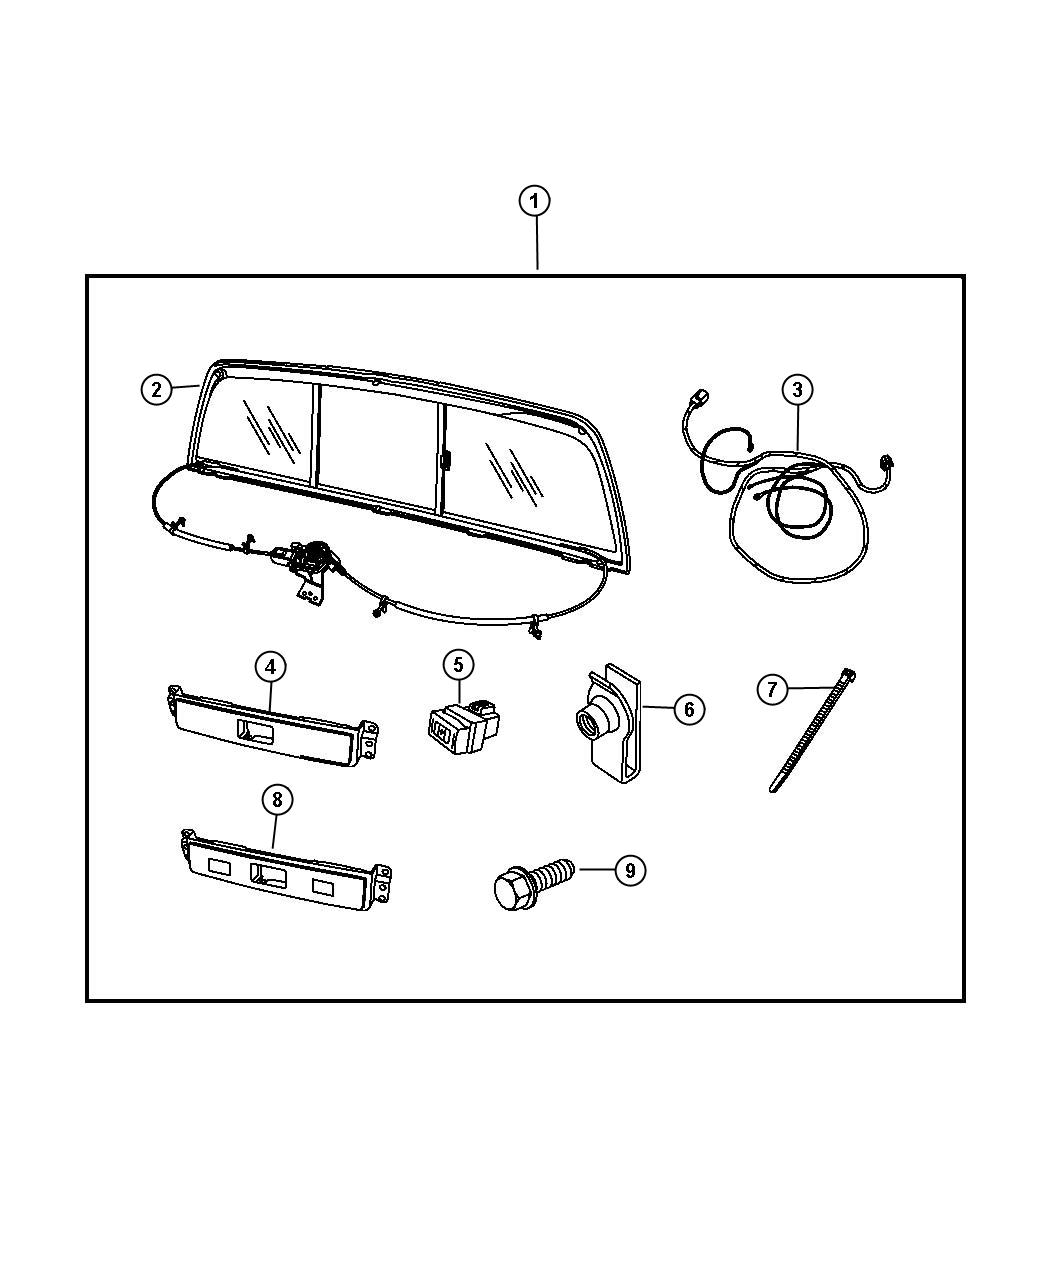 Dodge Ram 1500 Power Sliding Rear Window for Quad Cabs and